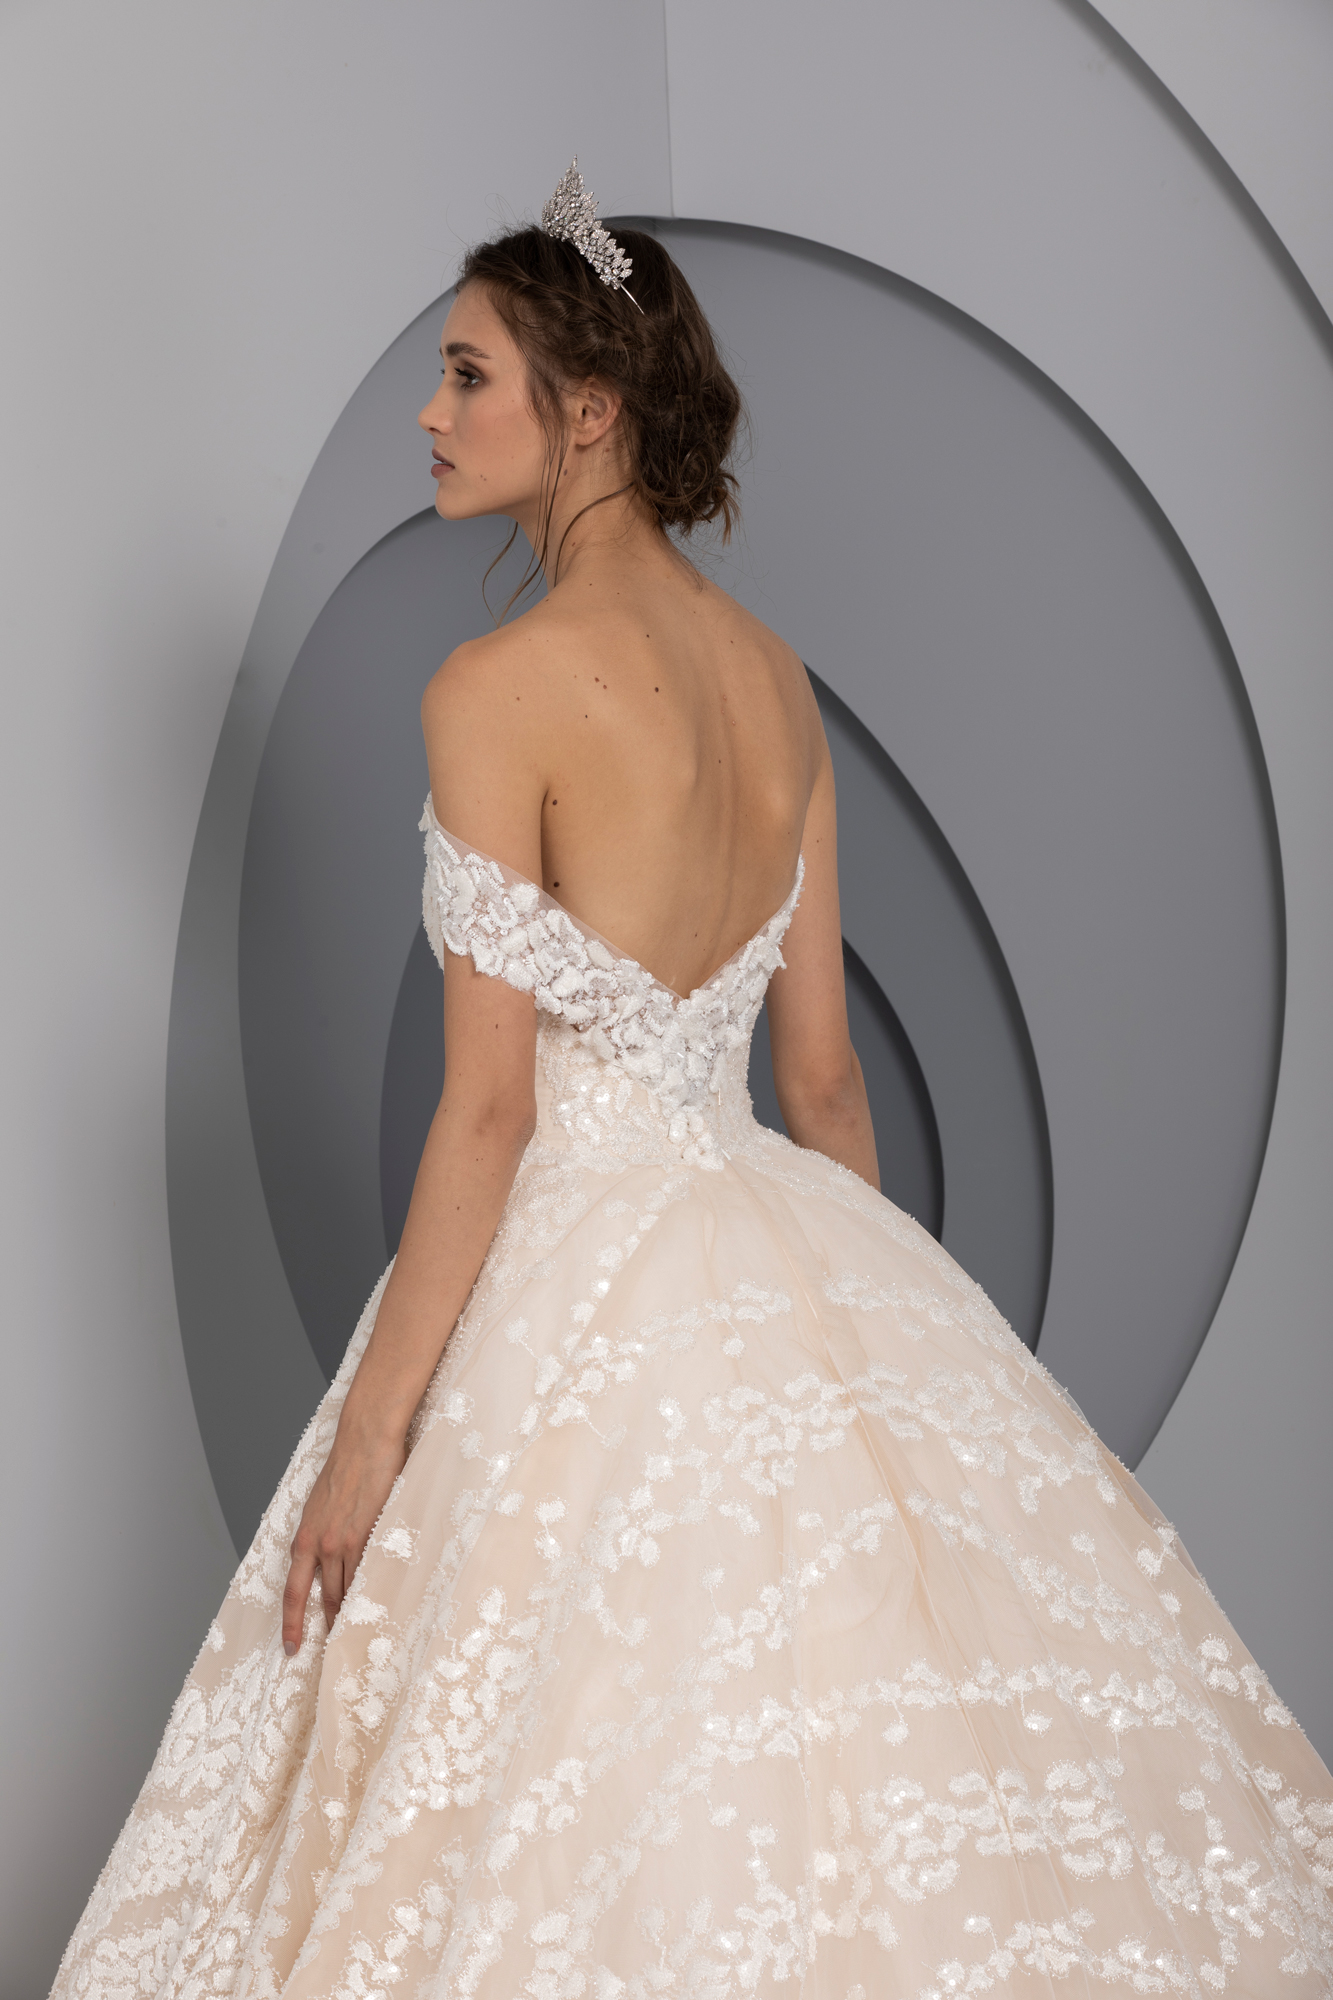 Bridal Gown by Tony Ward from the La Mariee Collection